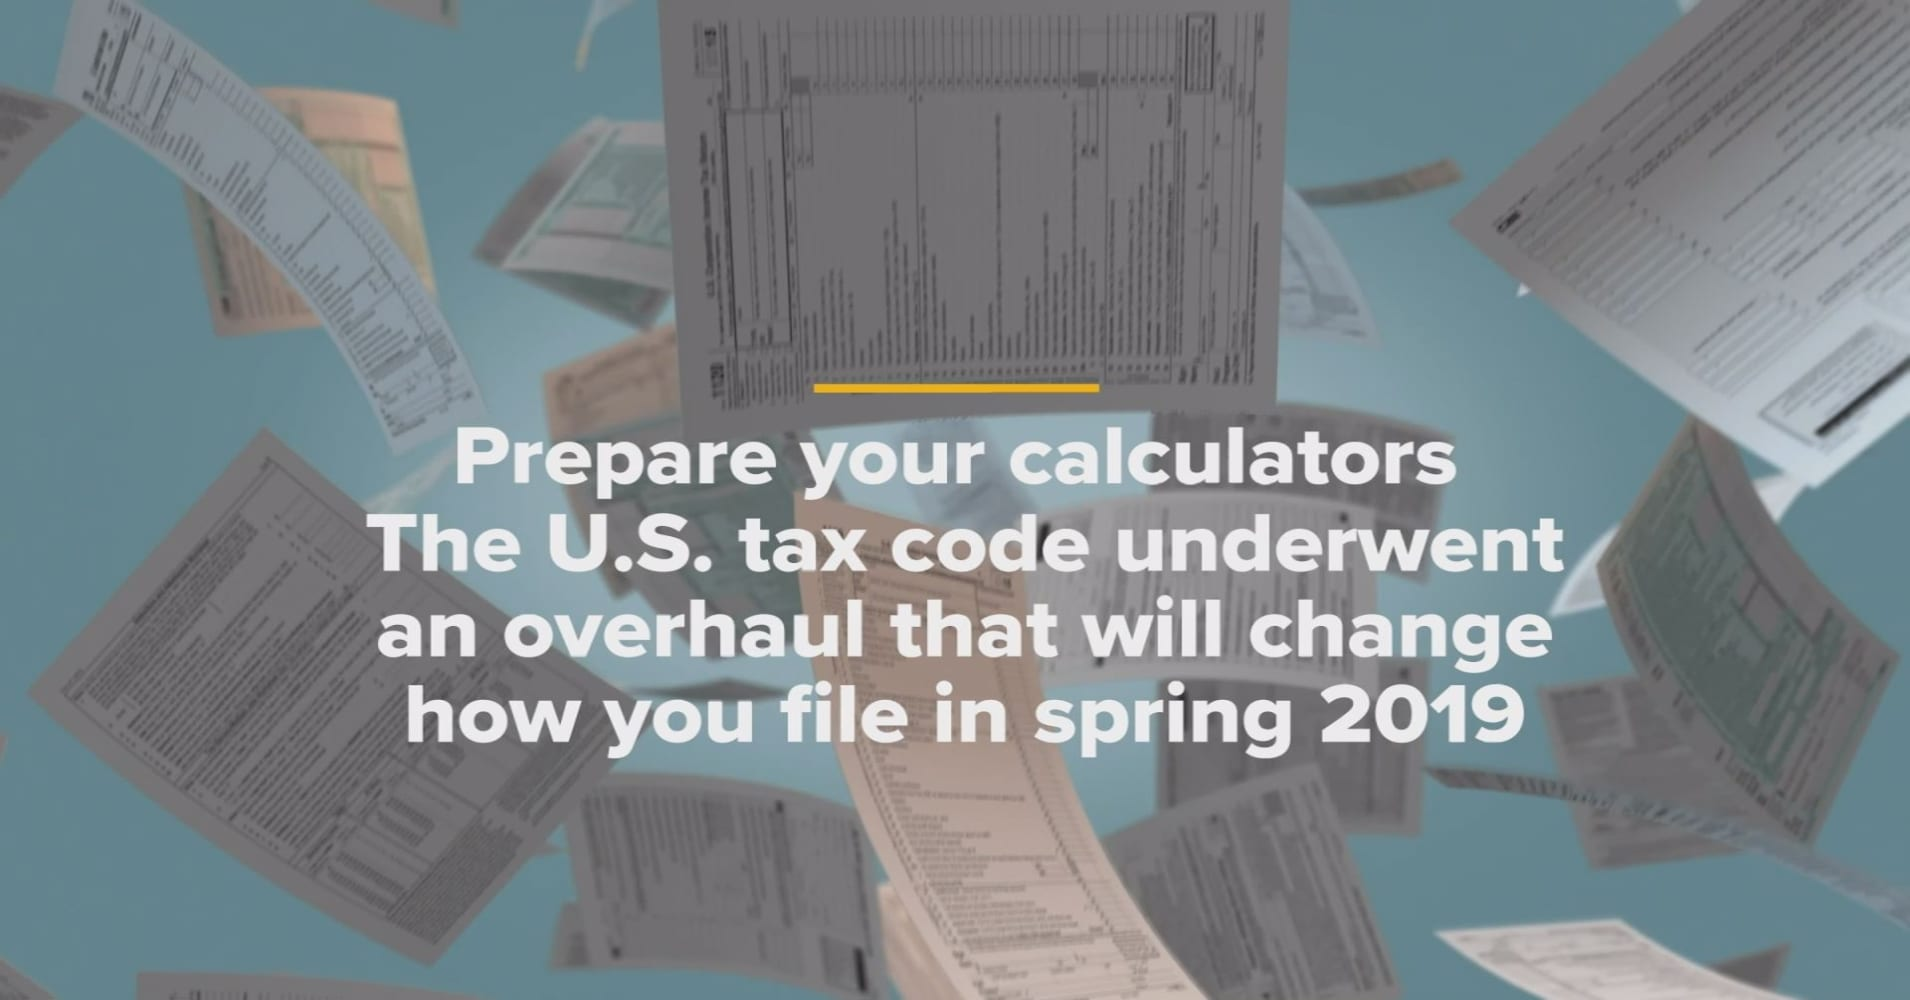 If you failed to withhold enough tax in 2018, the IRS has a